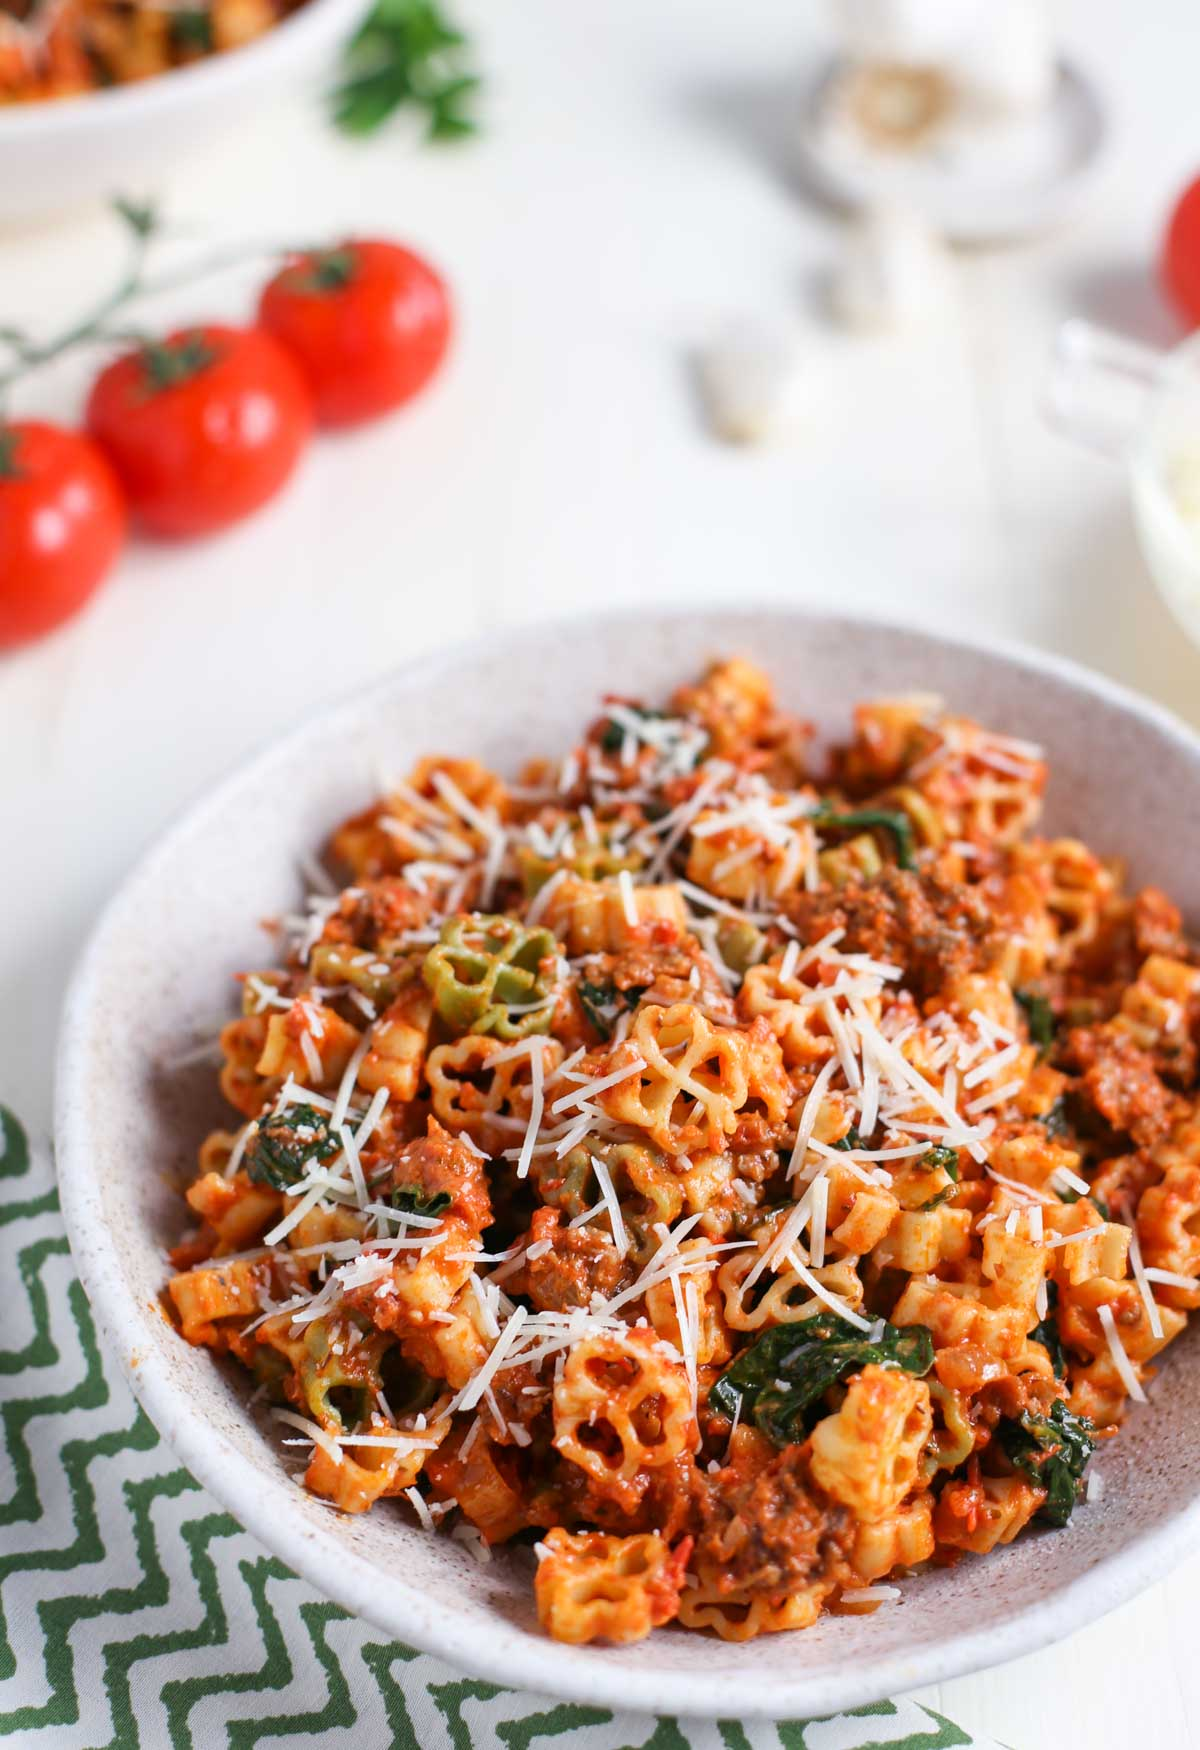 Side view of Pasta with Spicy Sausage and Tomato Cream Sauce with fresh tomatoes